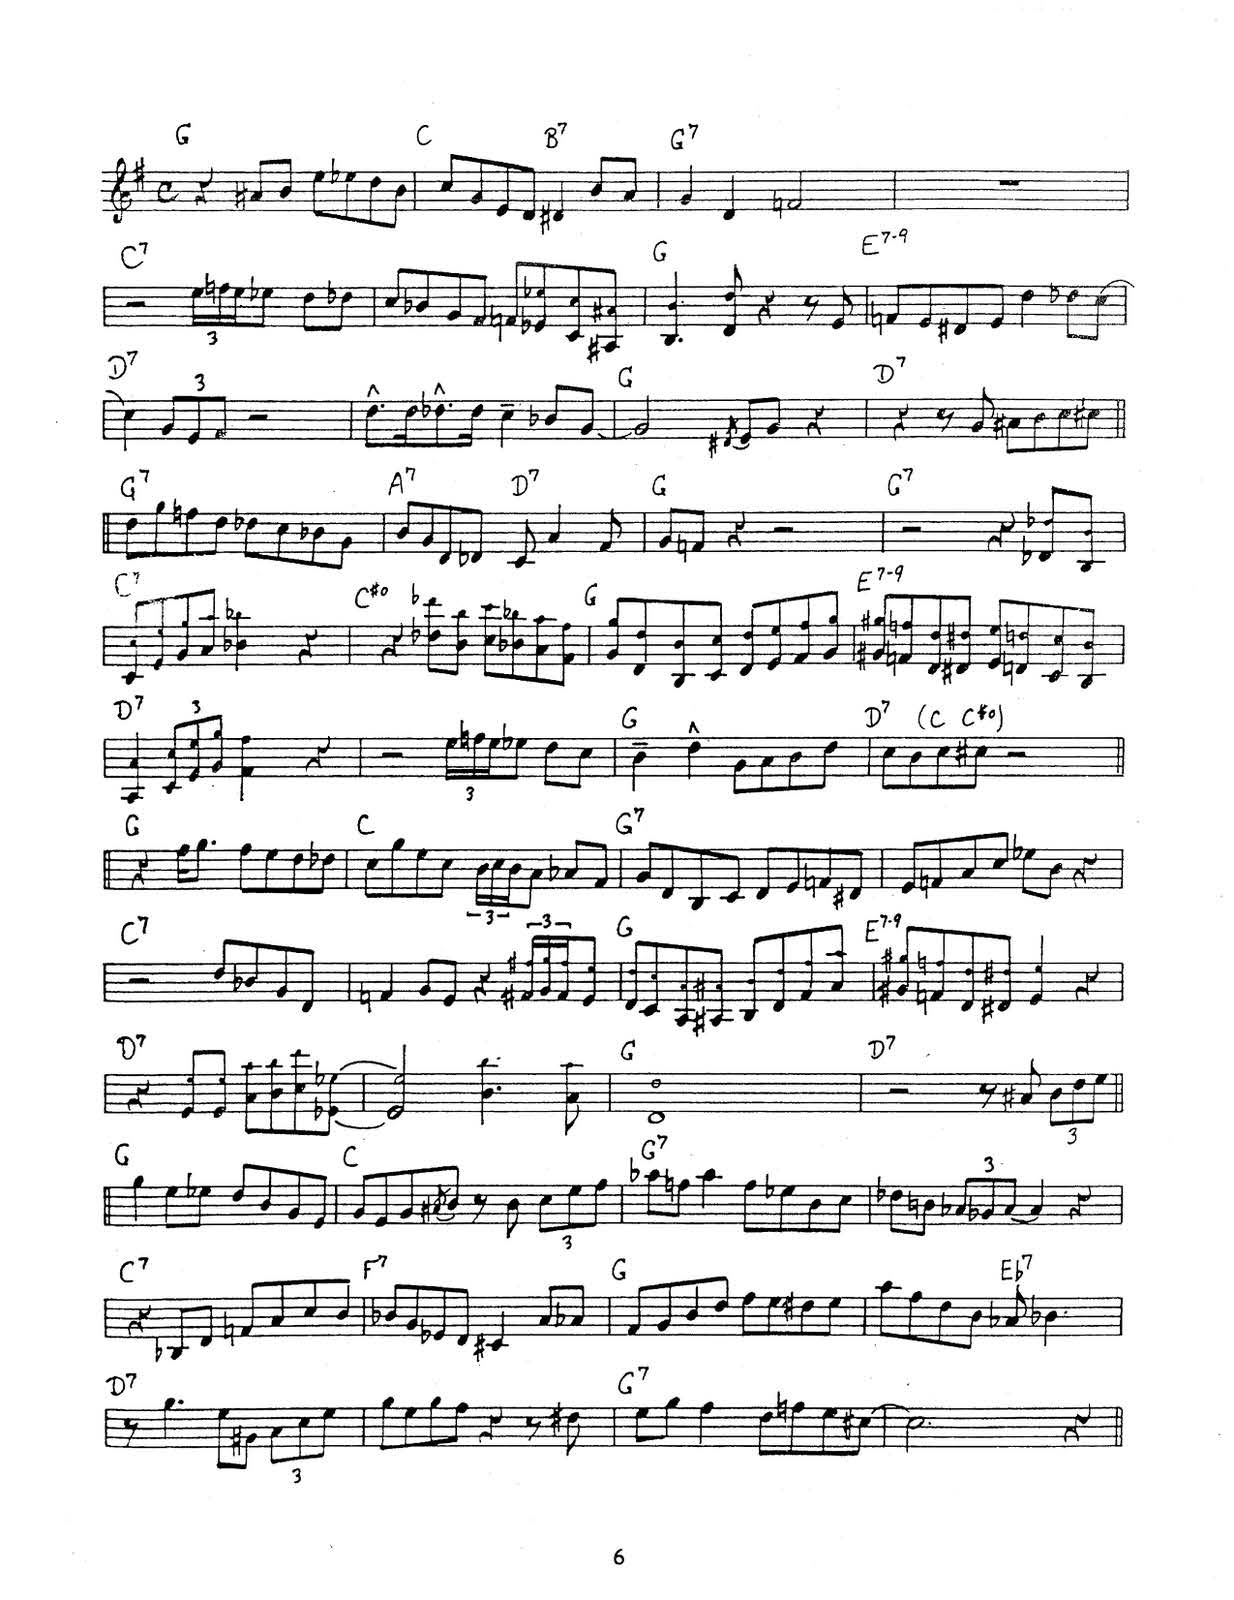 Berger, David Contemporary Jazz Studies V.1_Page_08